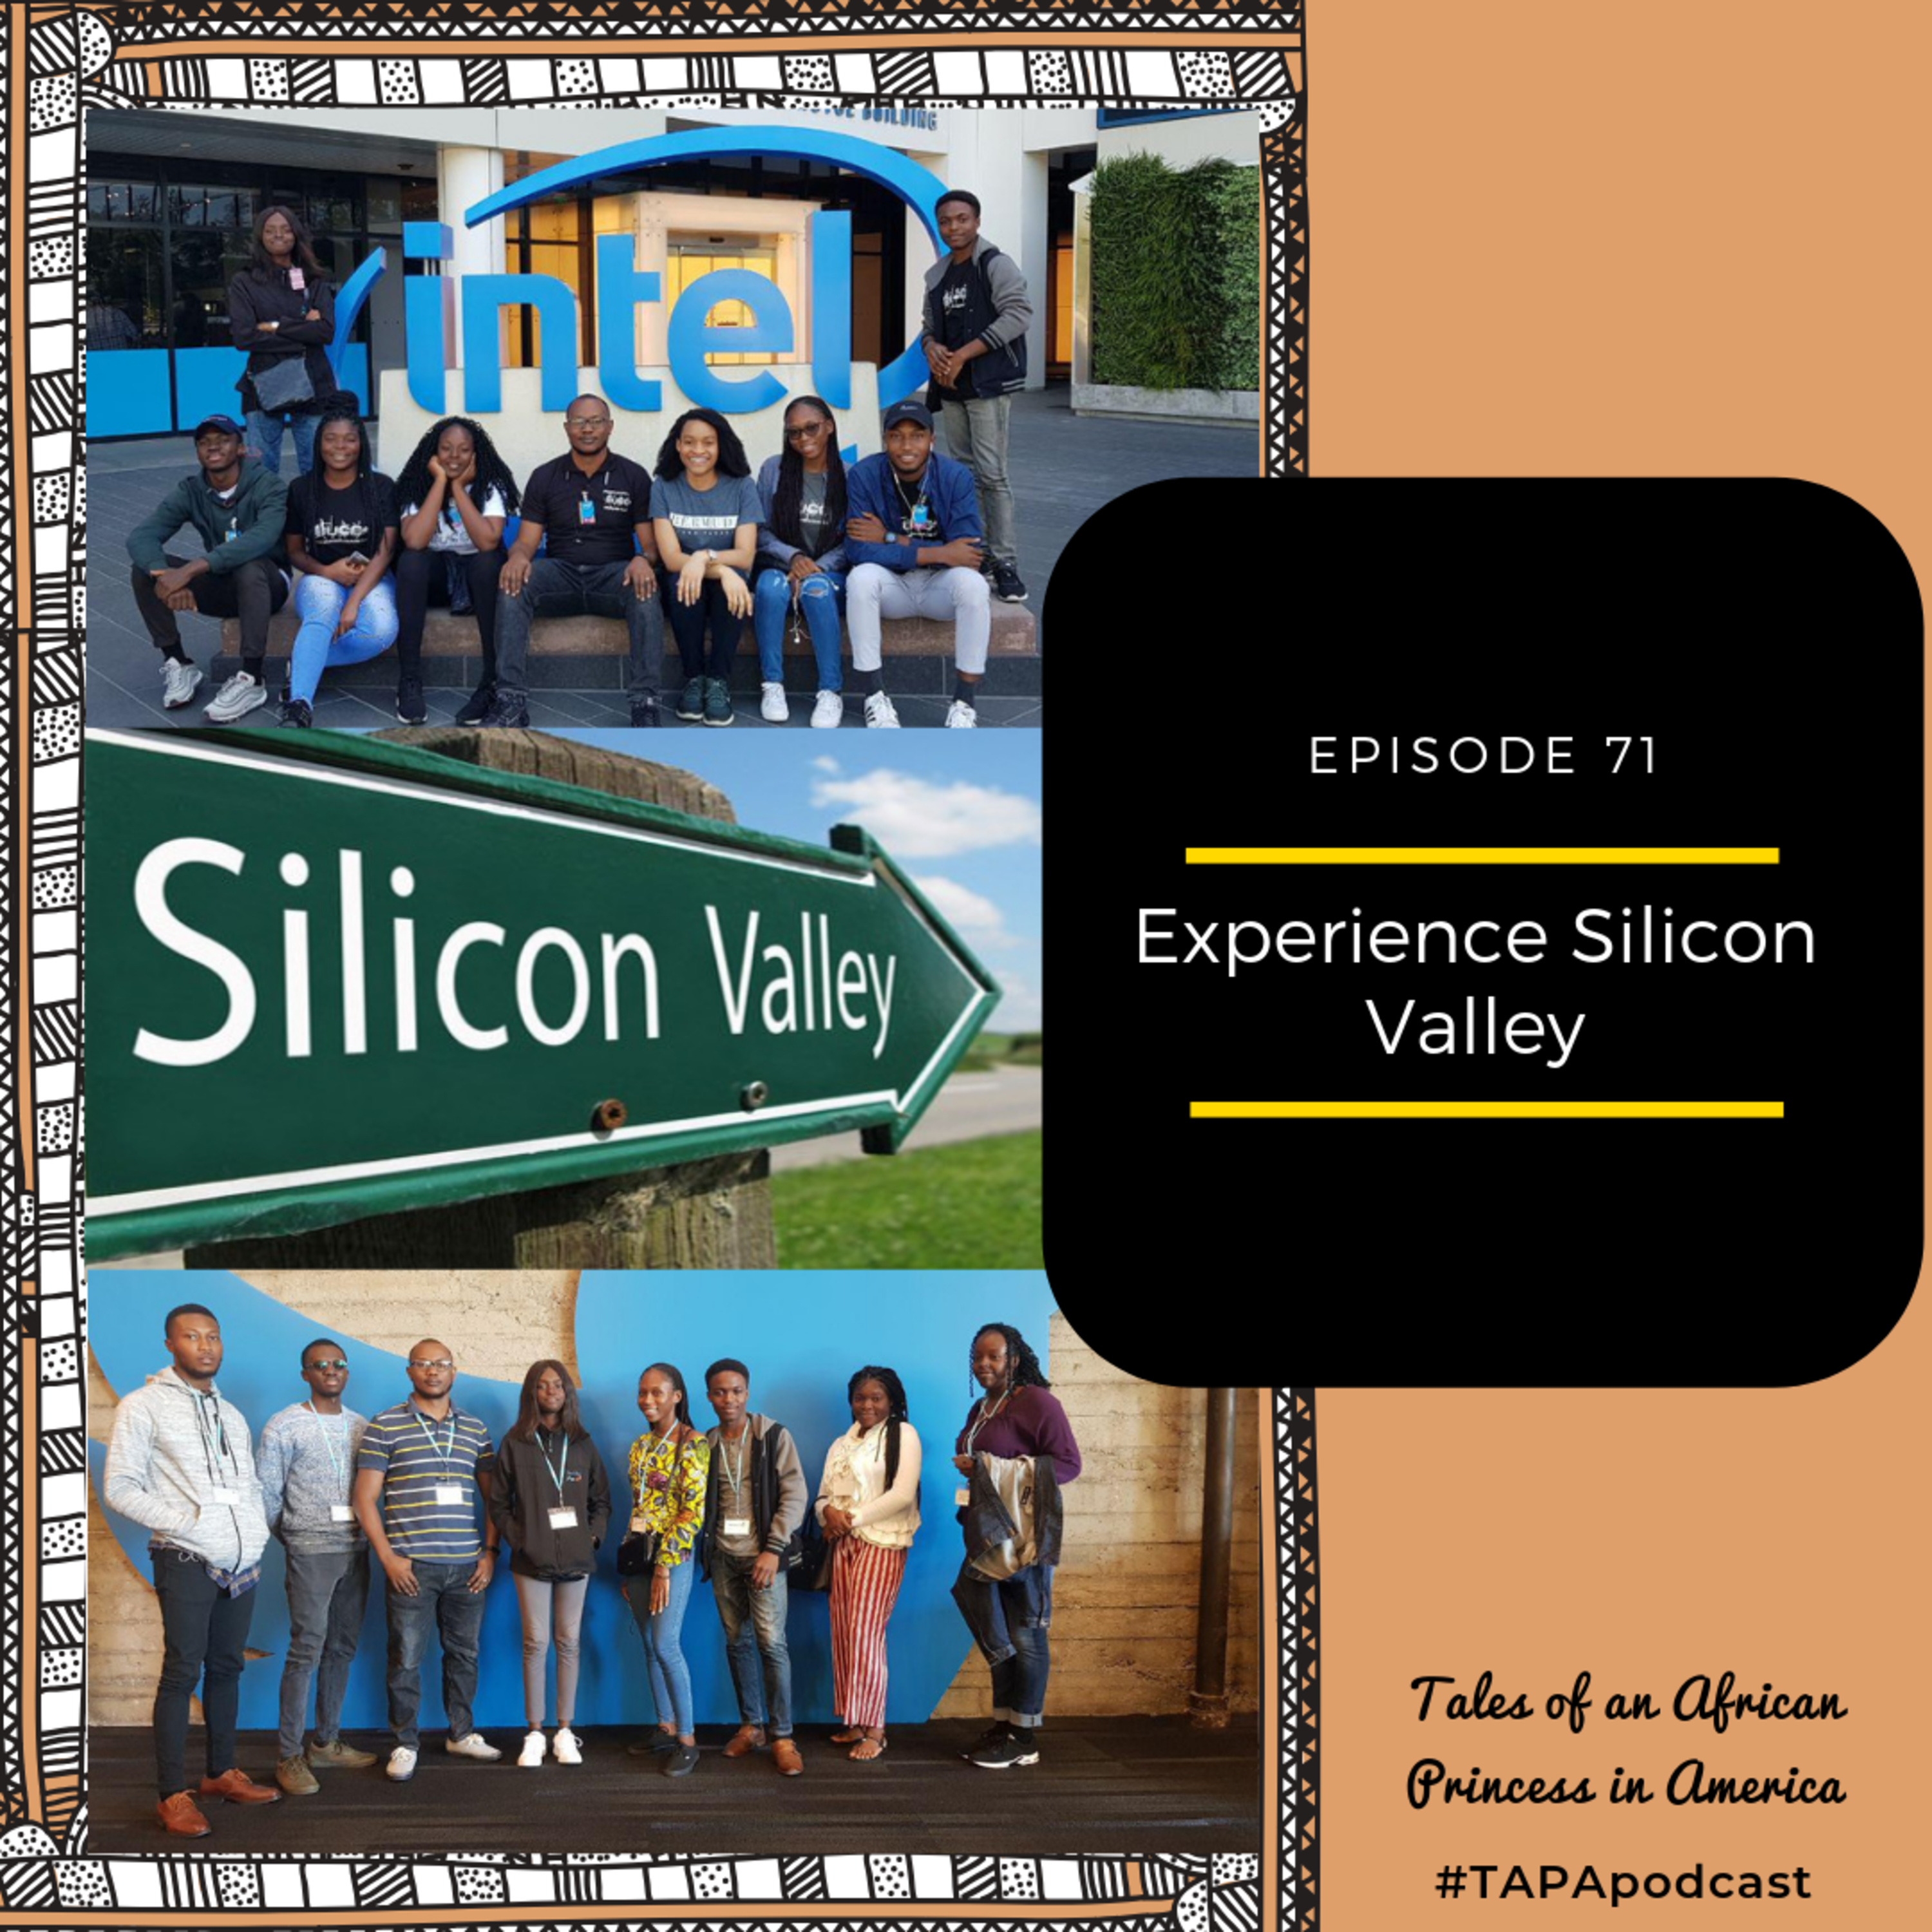 Experience Silicon Valley